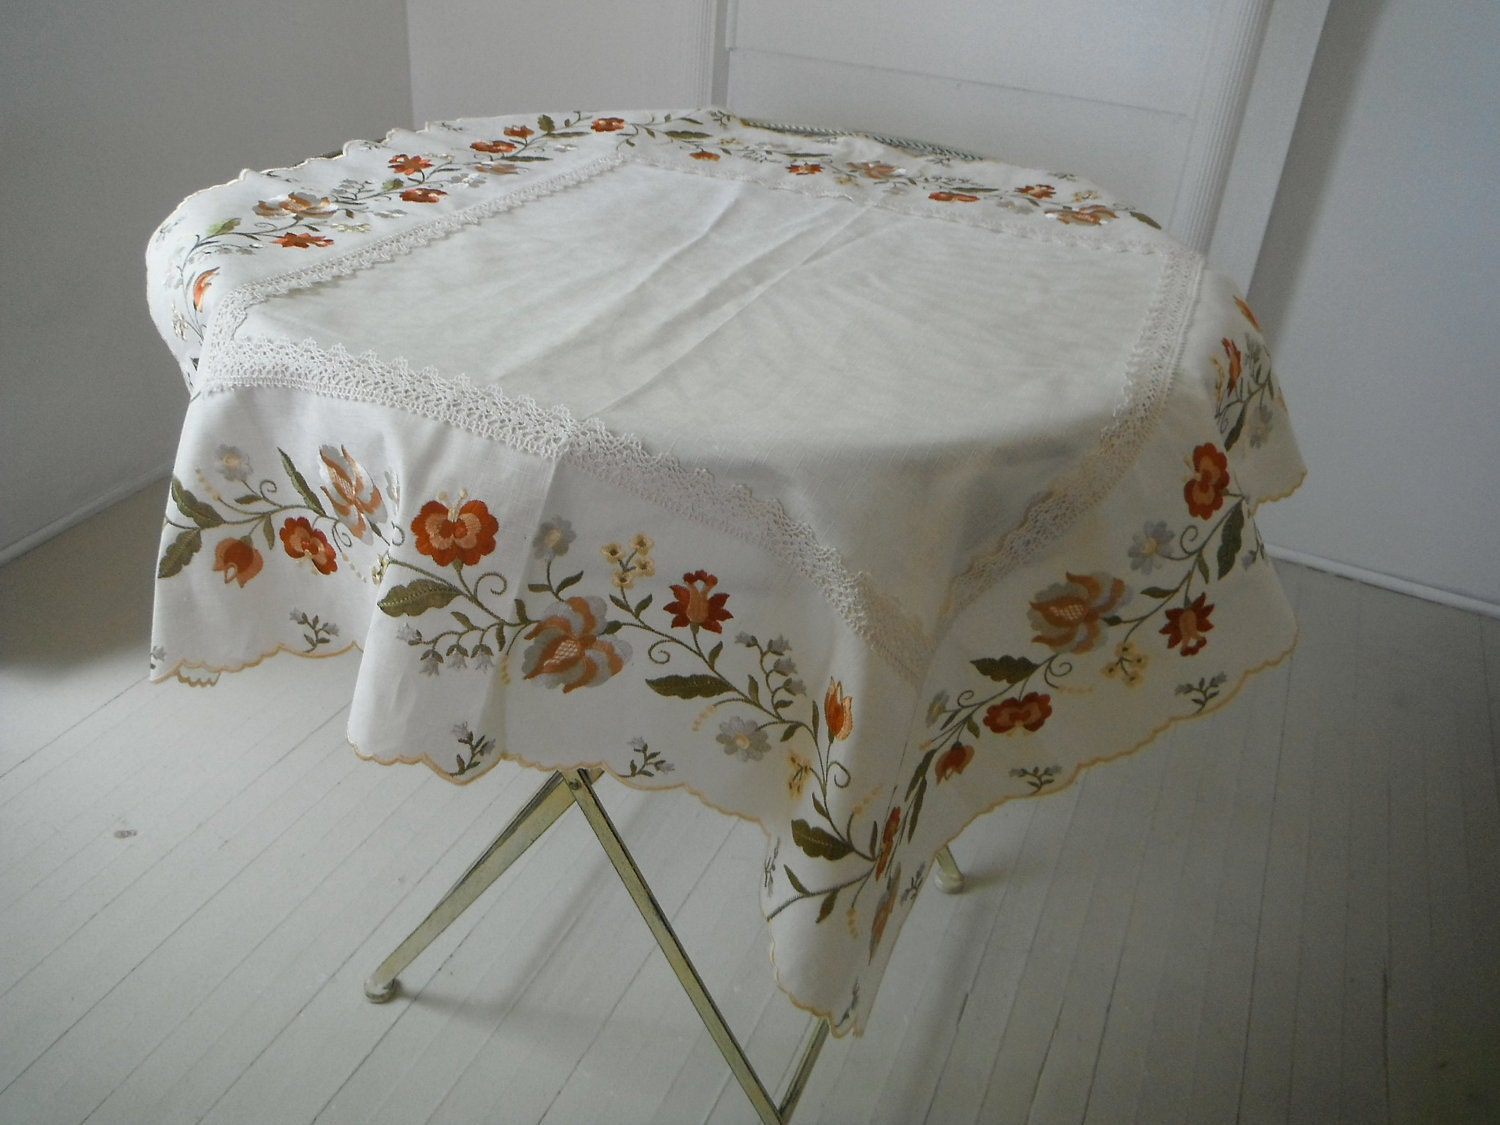 Vintage Embroidered Tablecloth Shabby Chic Cream With Lace